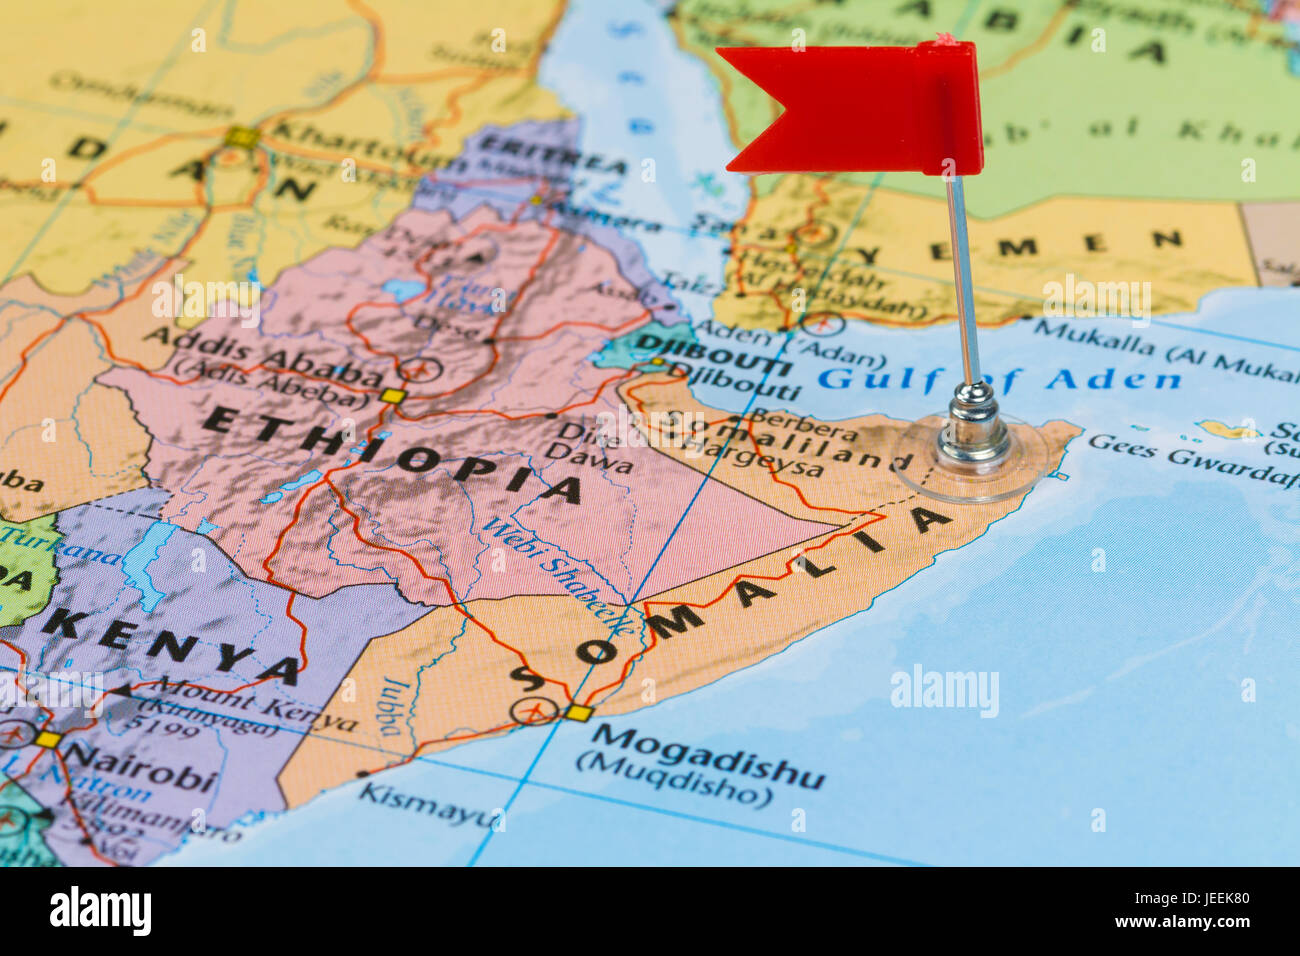 Africa Map Horn Of Africa%0A Mogadishu On World Map Photo of Somalia marked by red flag in holder  Country on African